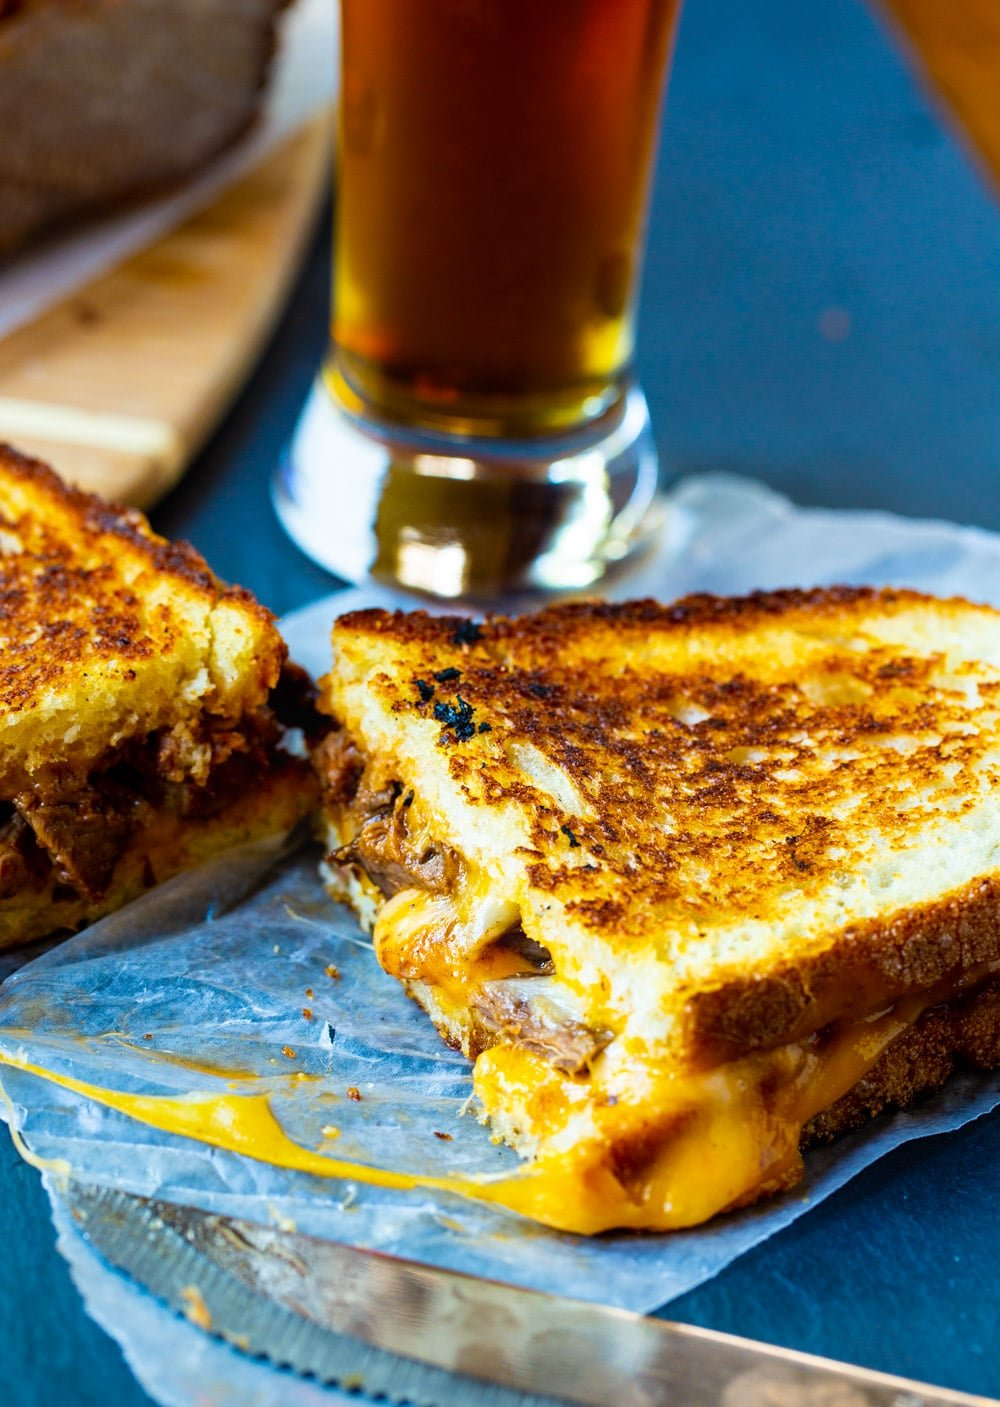 Grilled Cheese cut in half with a glass of beer.